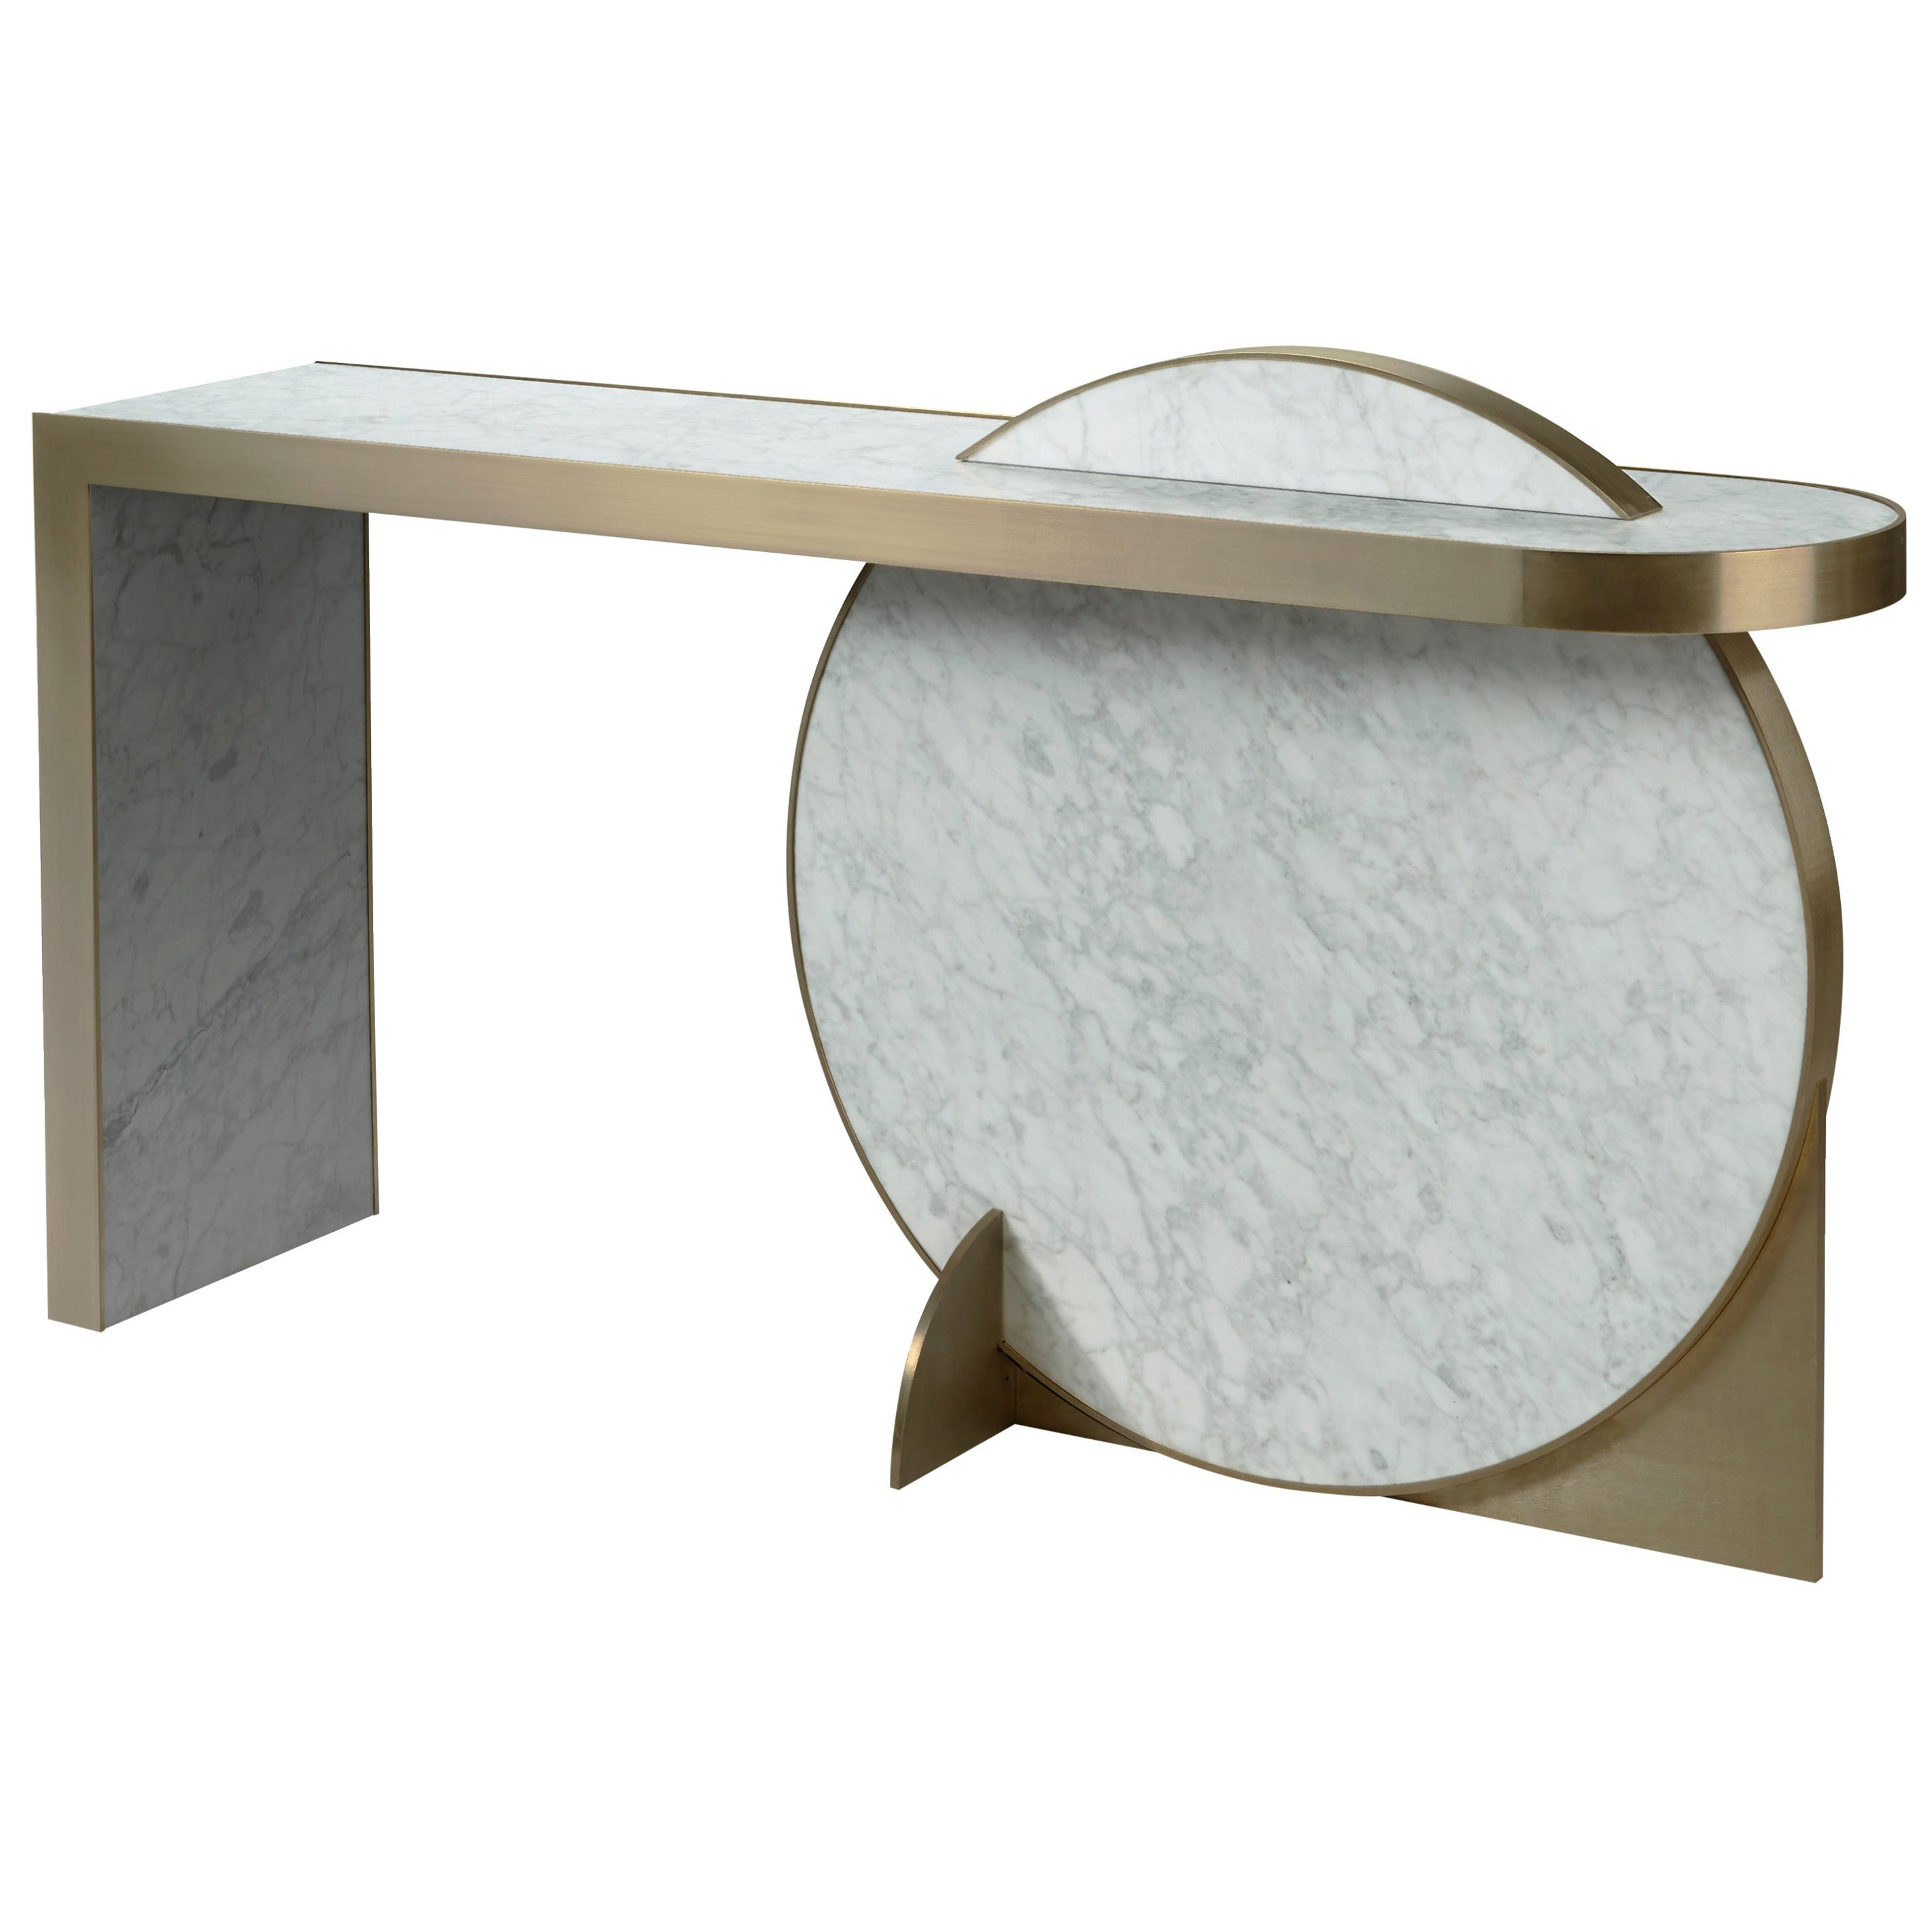 The Collision Console Carrara Marble and Brushed Brass, Snow, by Lara Bohinc